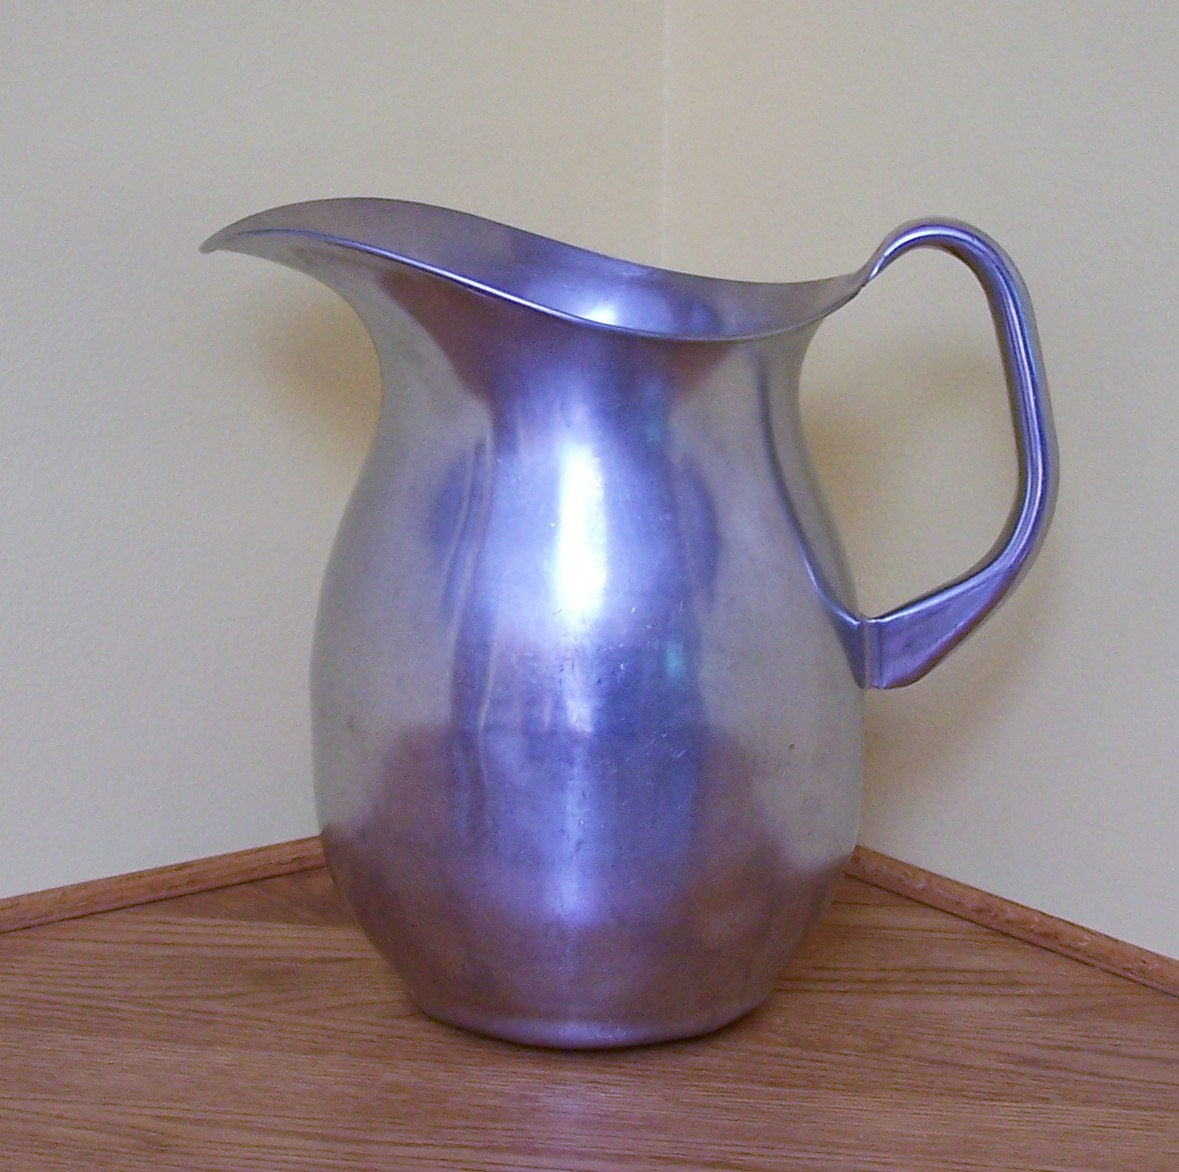 Vintage Stainless Steel Pitcher Large Vollrath By